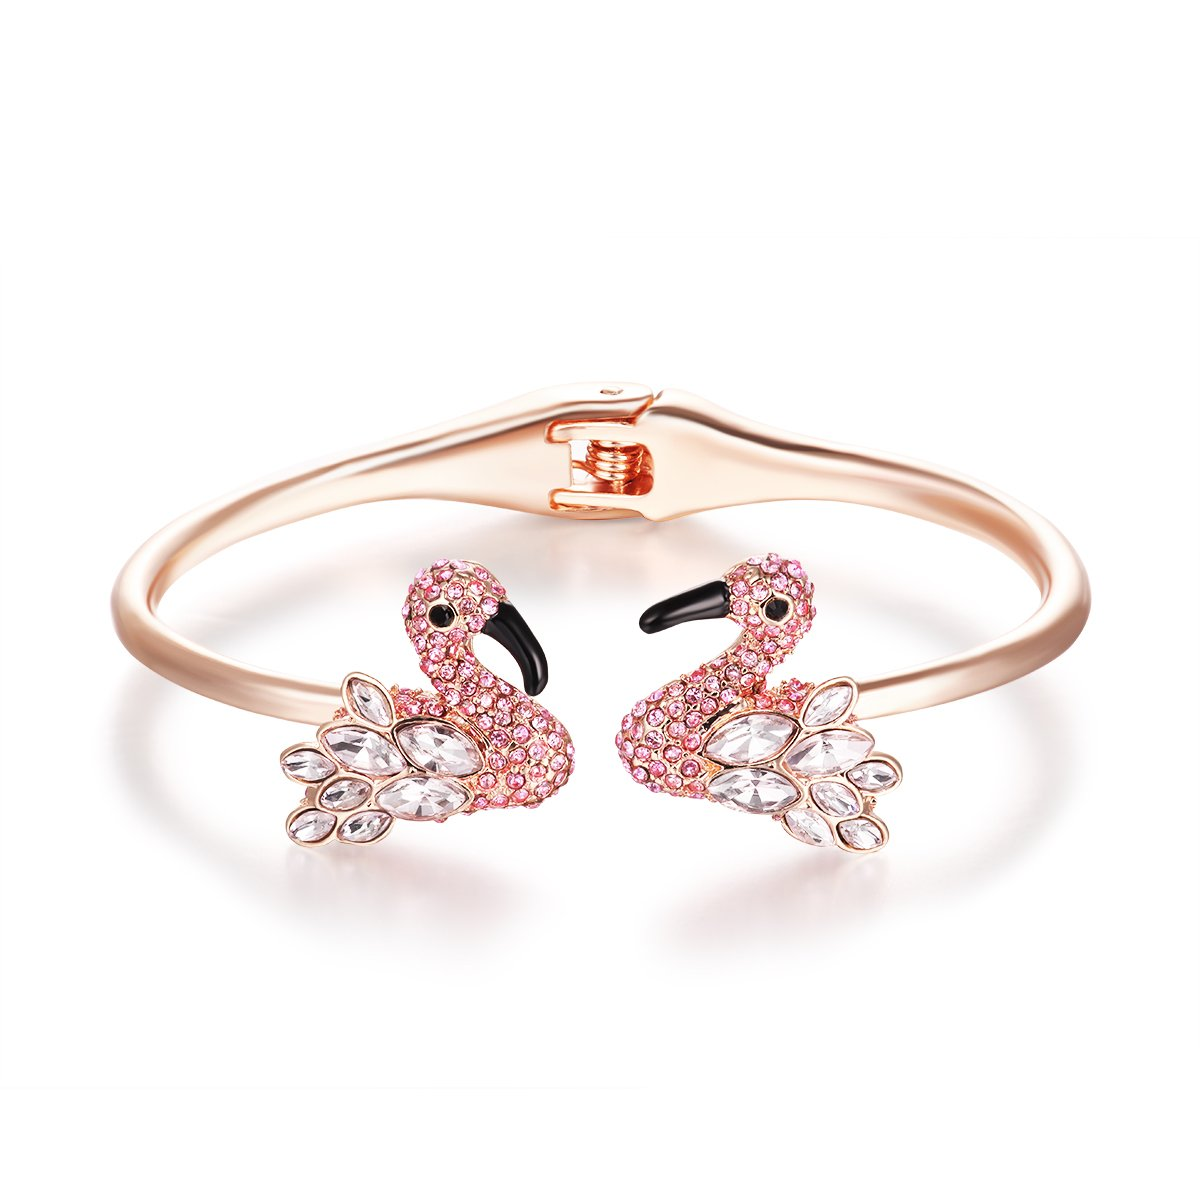 Paitse Jewelry Crystal Inlaid Flamingo Shape Women's Fashion bangle Bracelet (Pink)